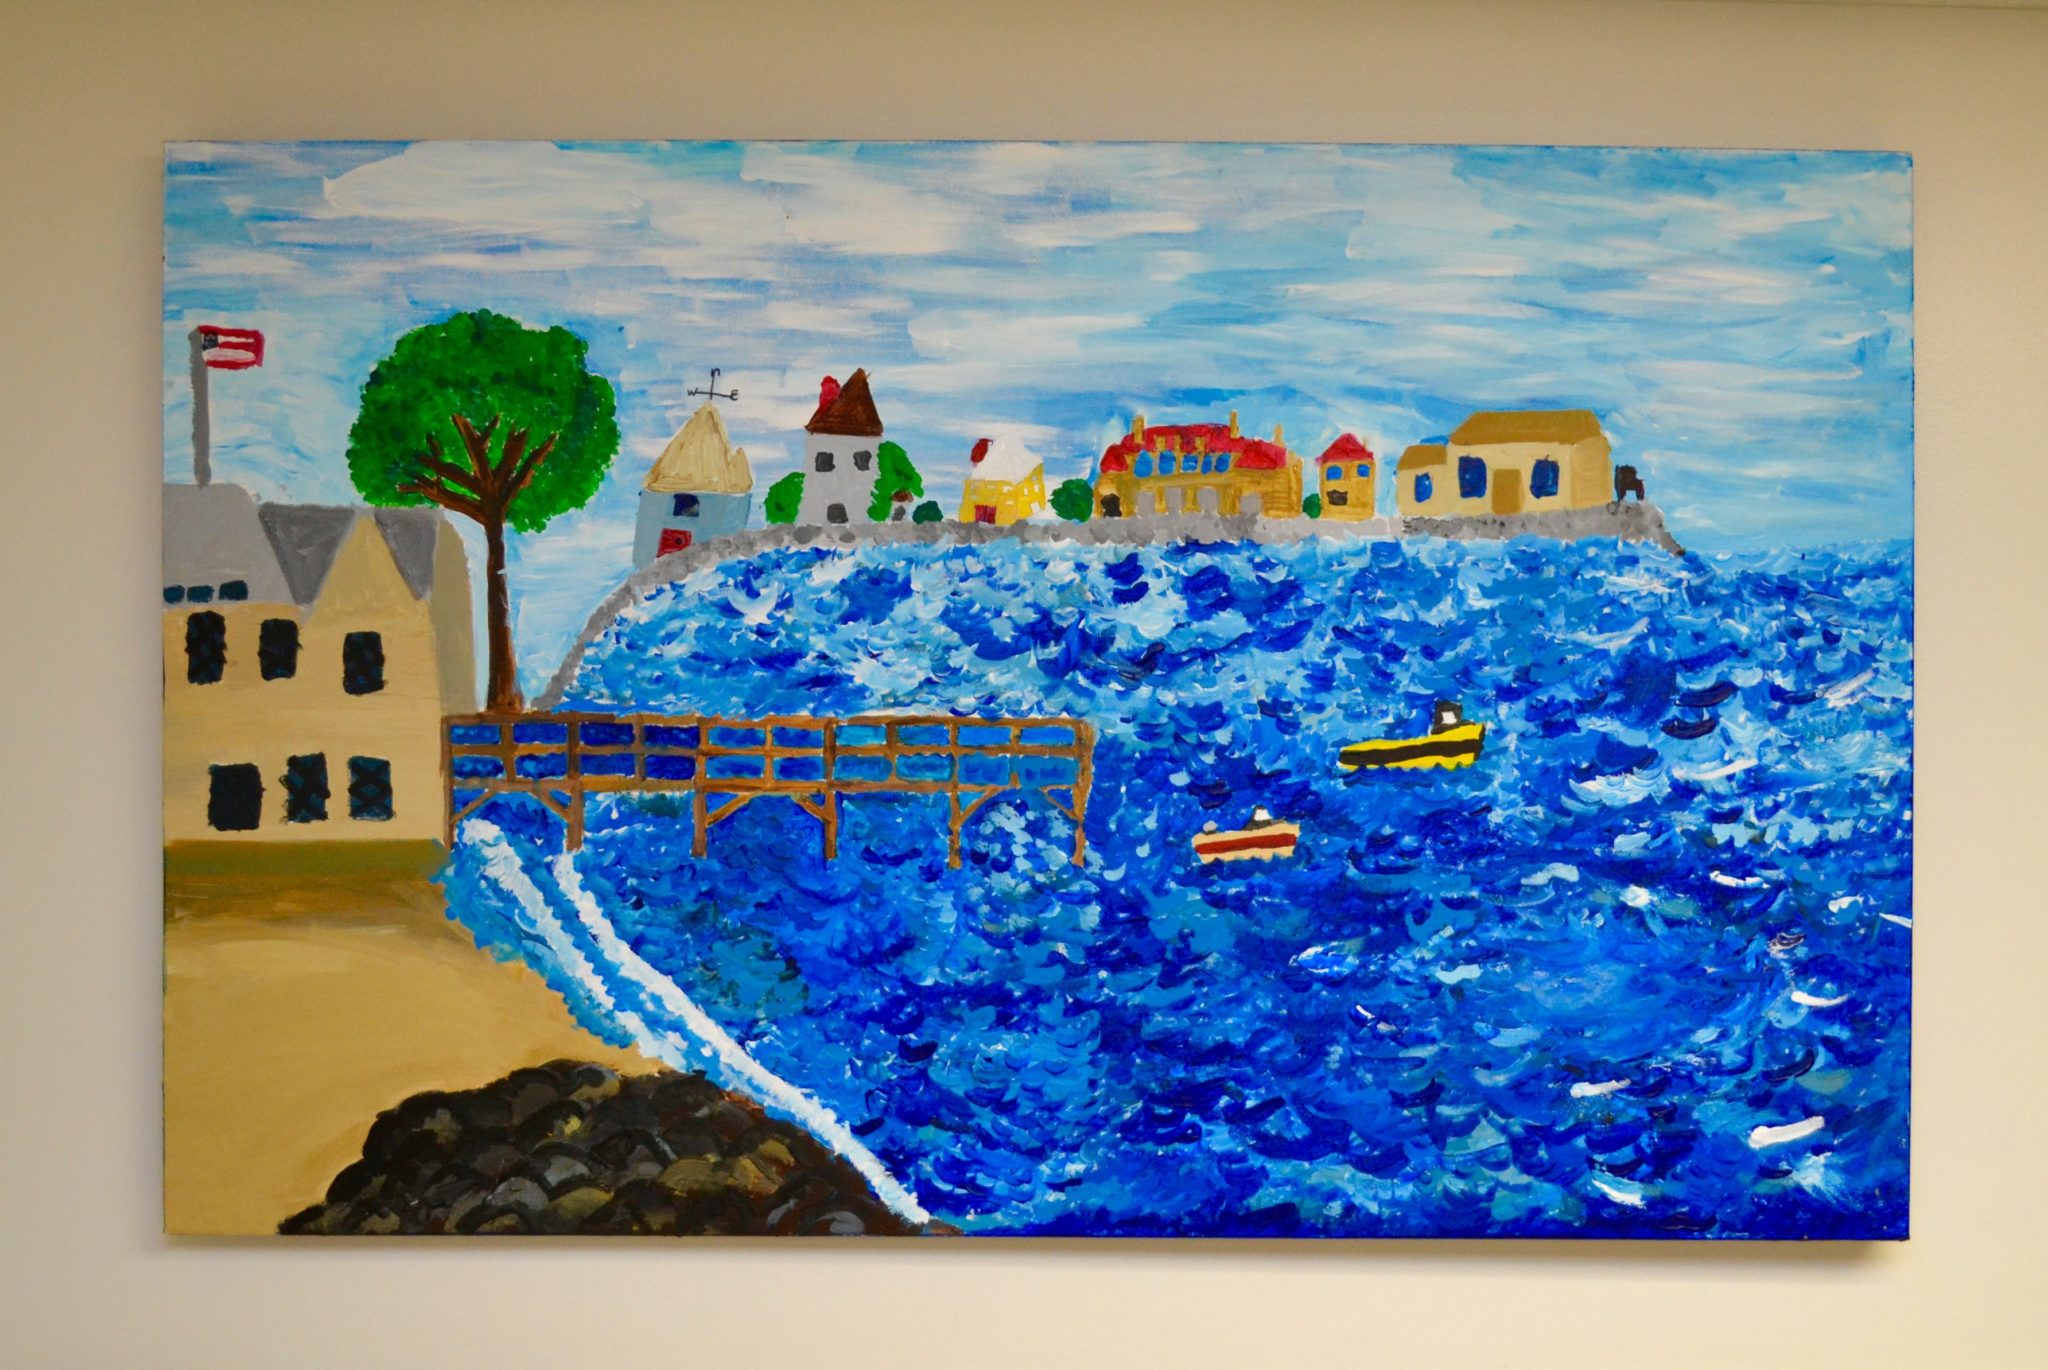 Stanley artwork of the ocean with boats and houses